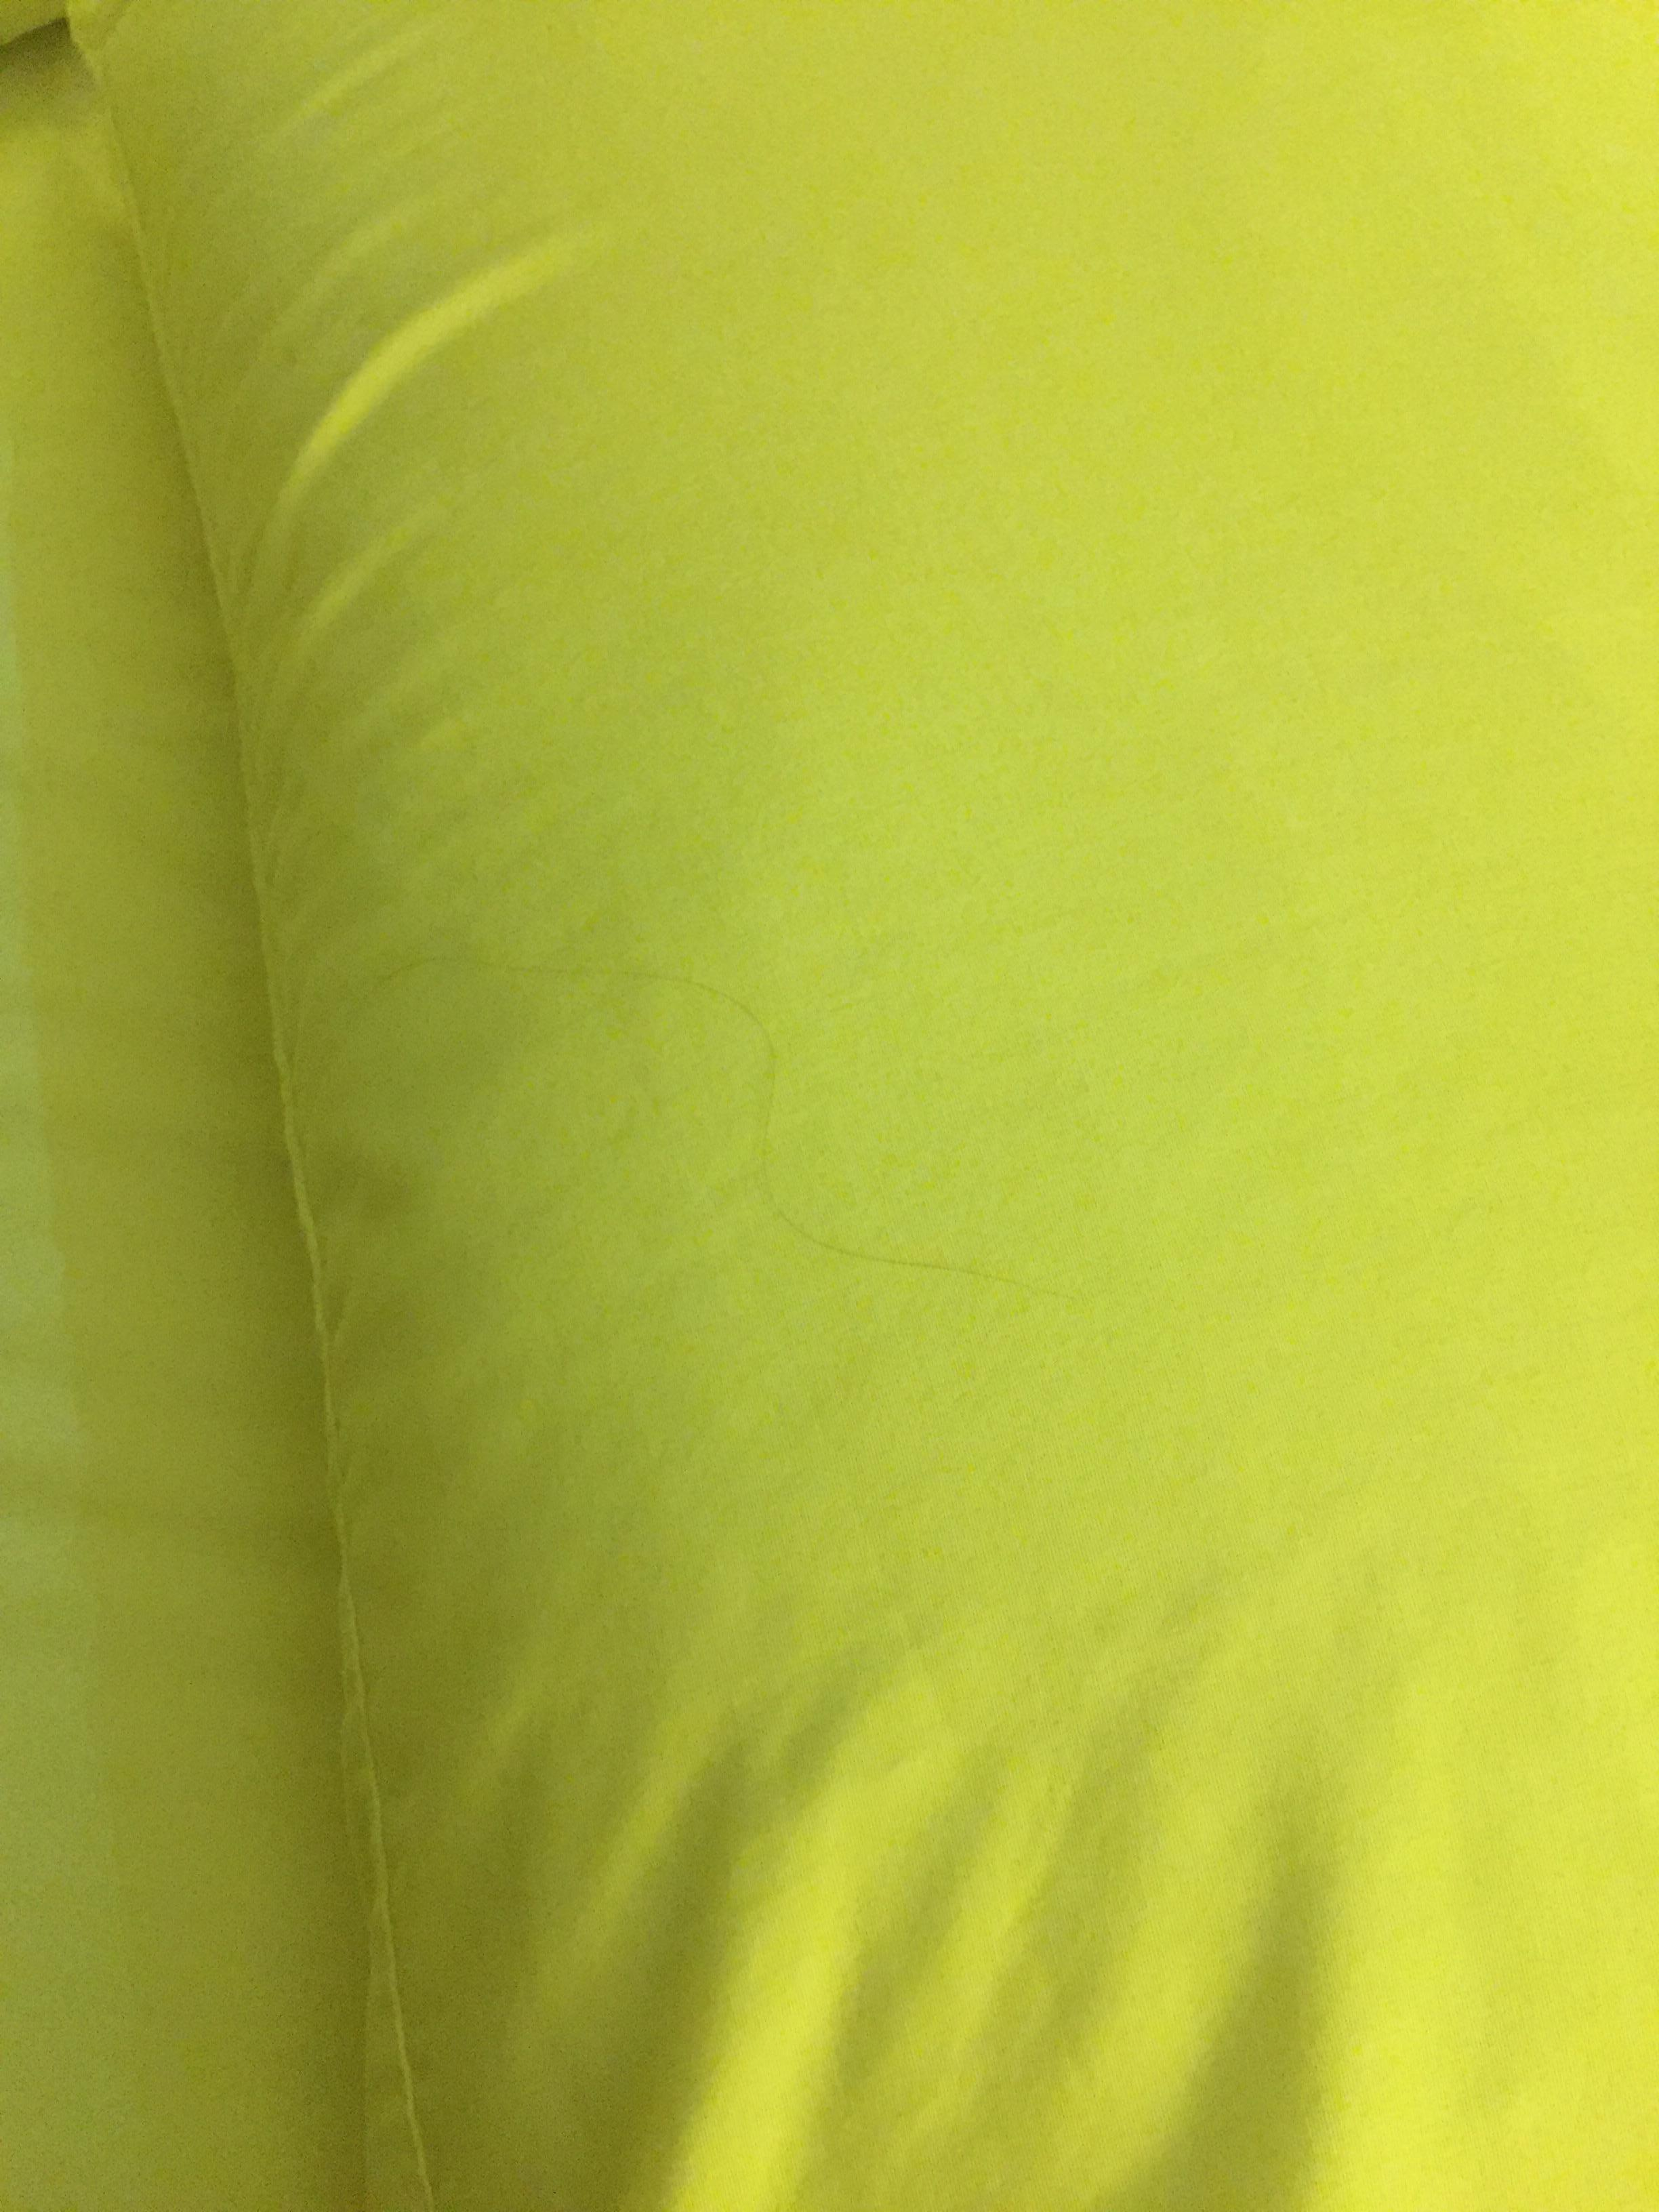 Stains on pillows